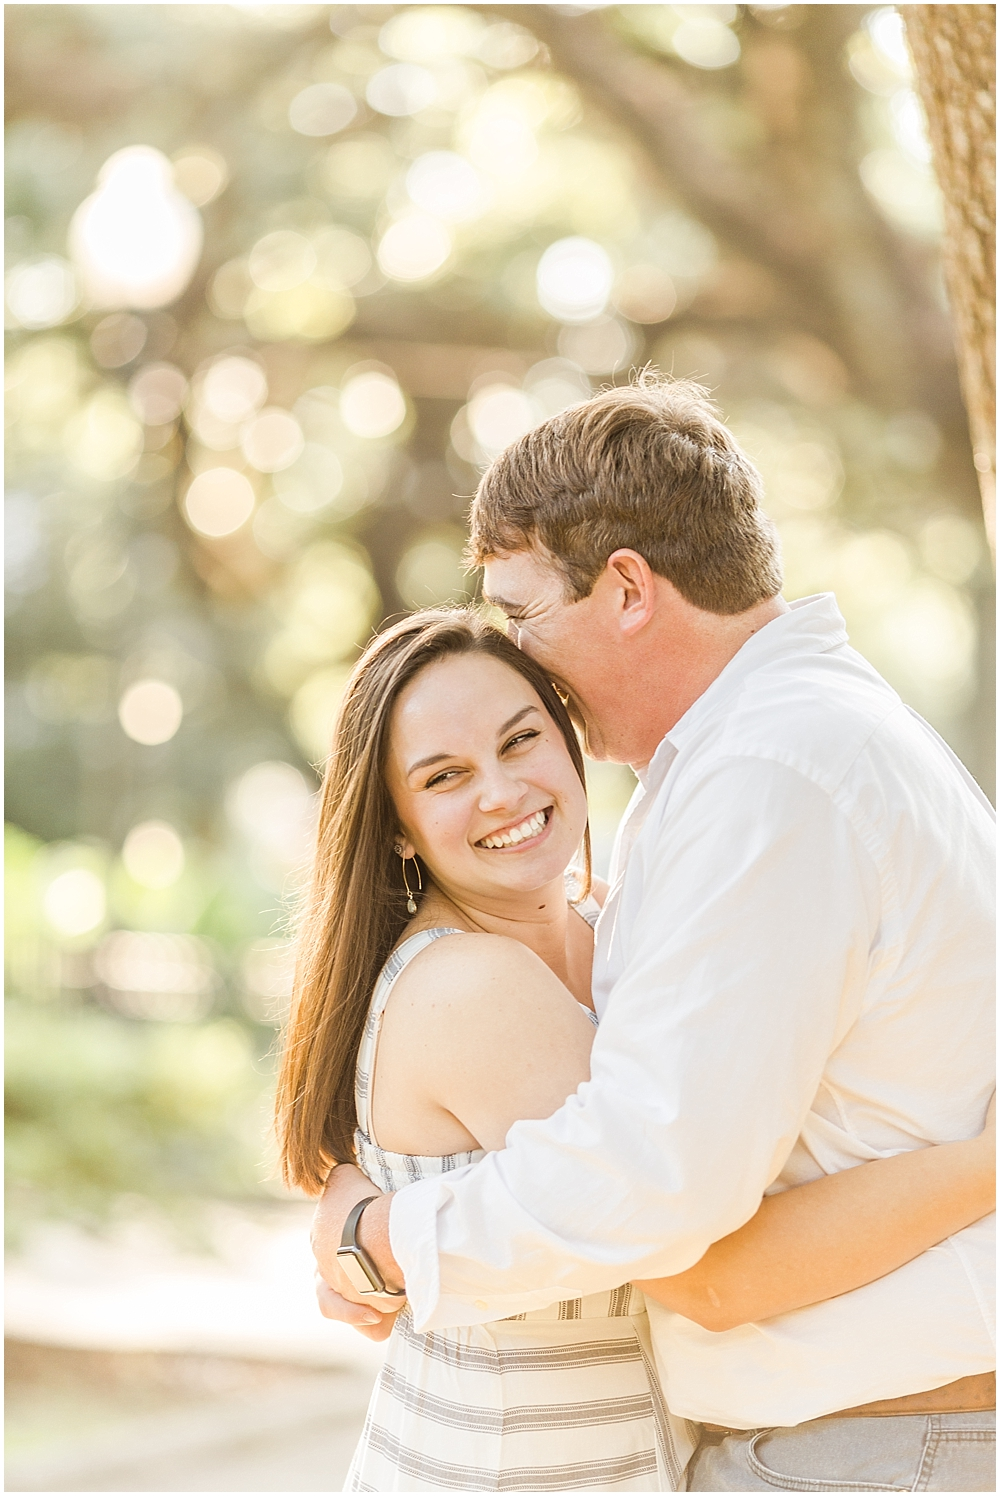 Ashton-Clark-Photography-Wedding-Portrait-Family-Photographer-Mobile-Alabama_0396.jpg